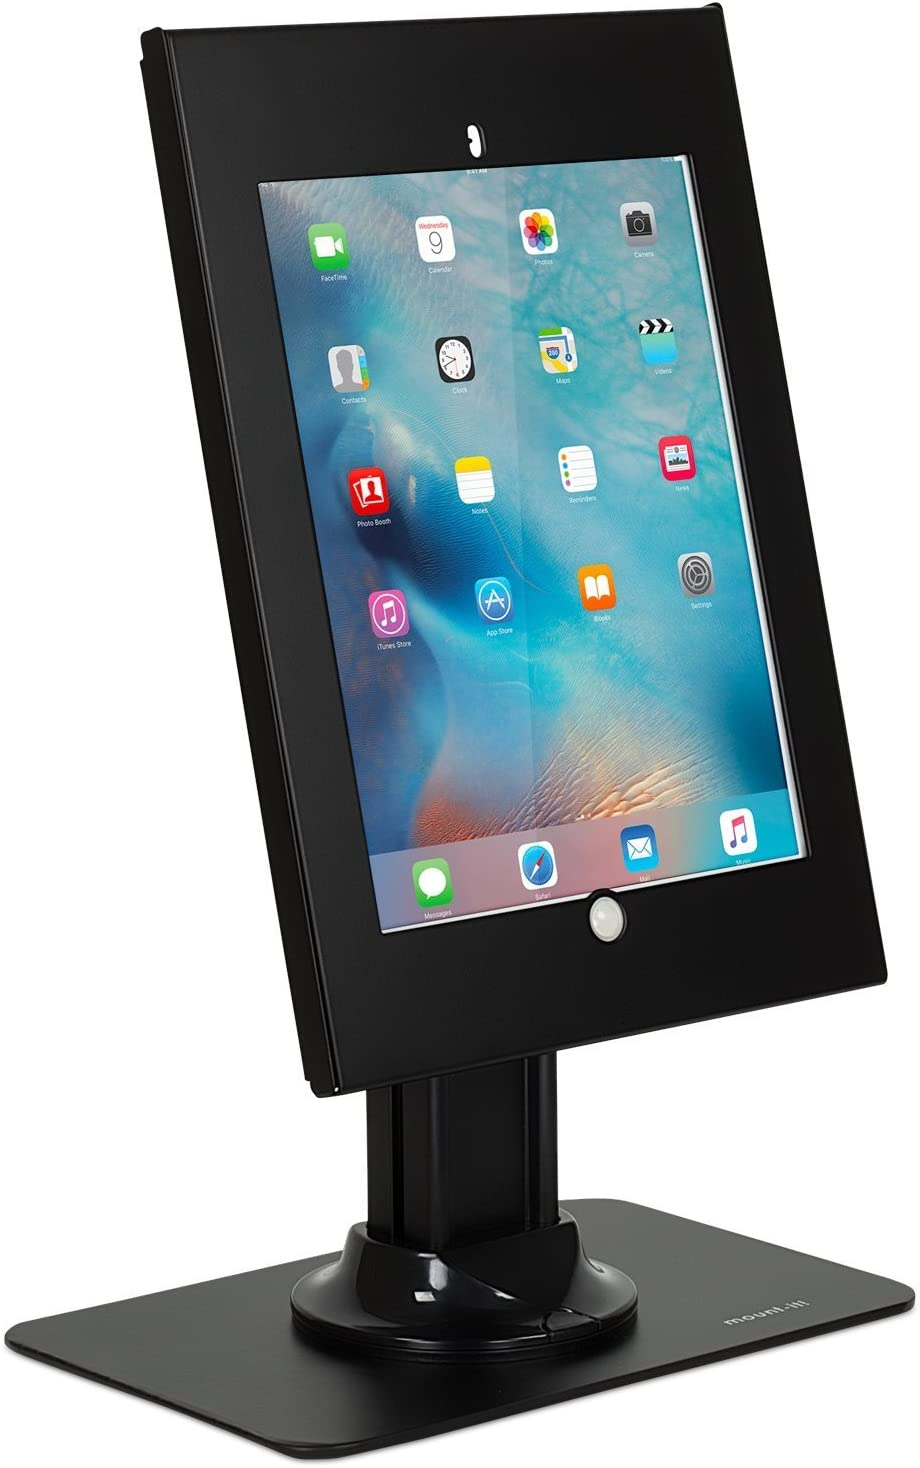 Mount-It! Anti-Theft Tablet Kiosk for iPad Pro | Locking Tablet Stand for iPad Pro 12.9 | Adjustable Tablet Mount Stand for iPad Pro 12.9 | MI-3771B-XL